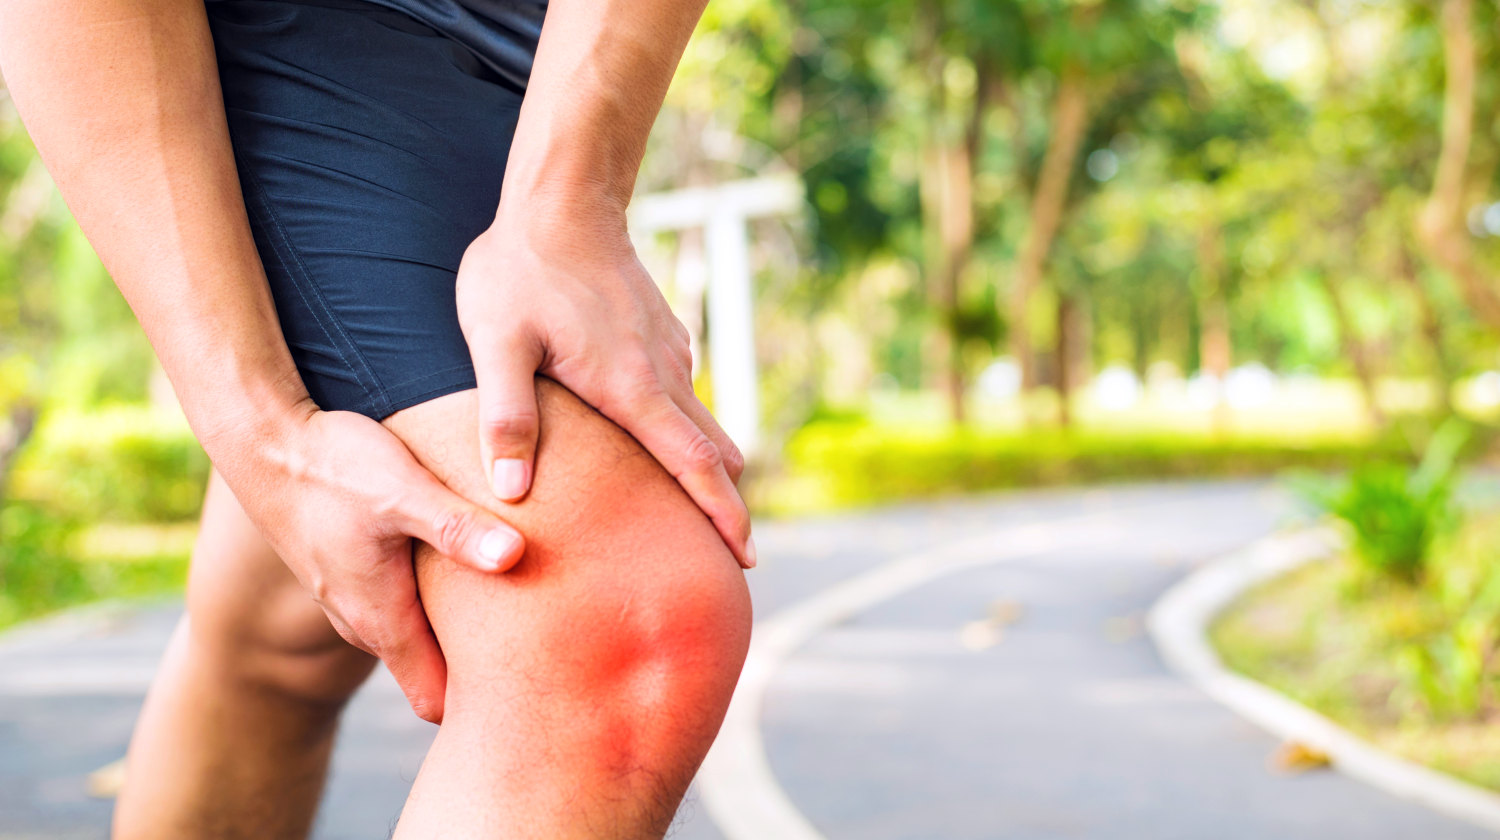 Feature | knee pain during running | Can Too Much Iron Cause Inflammation?